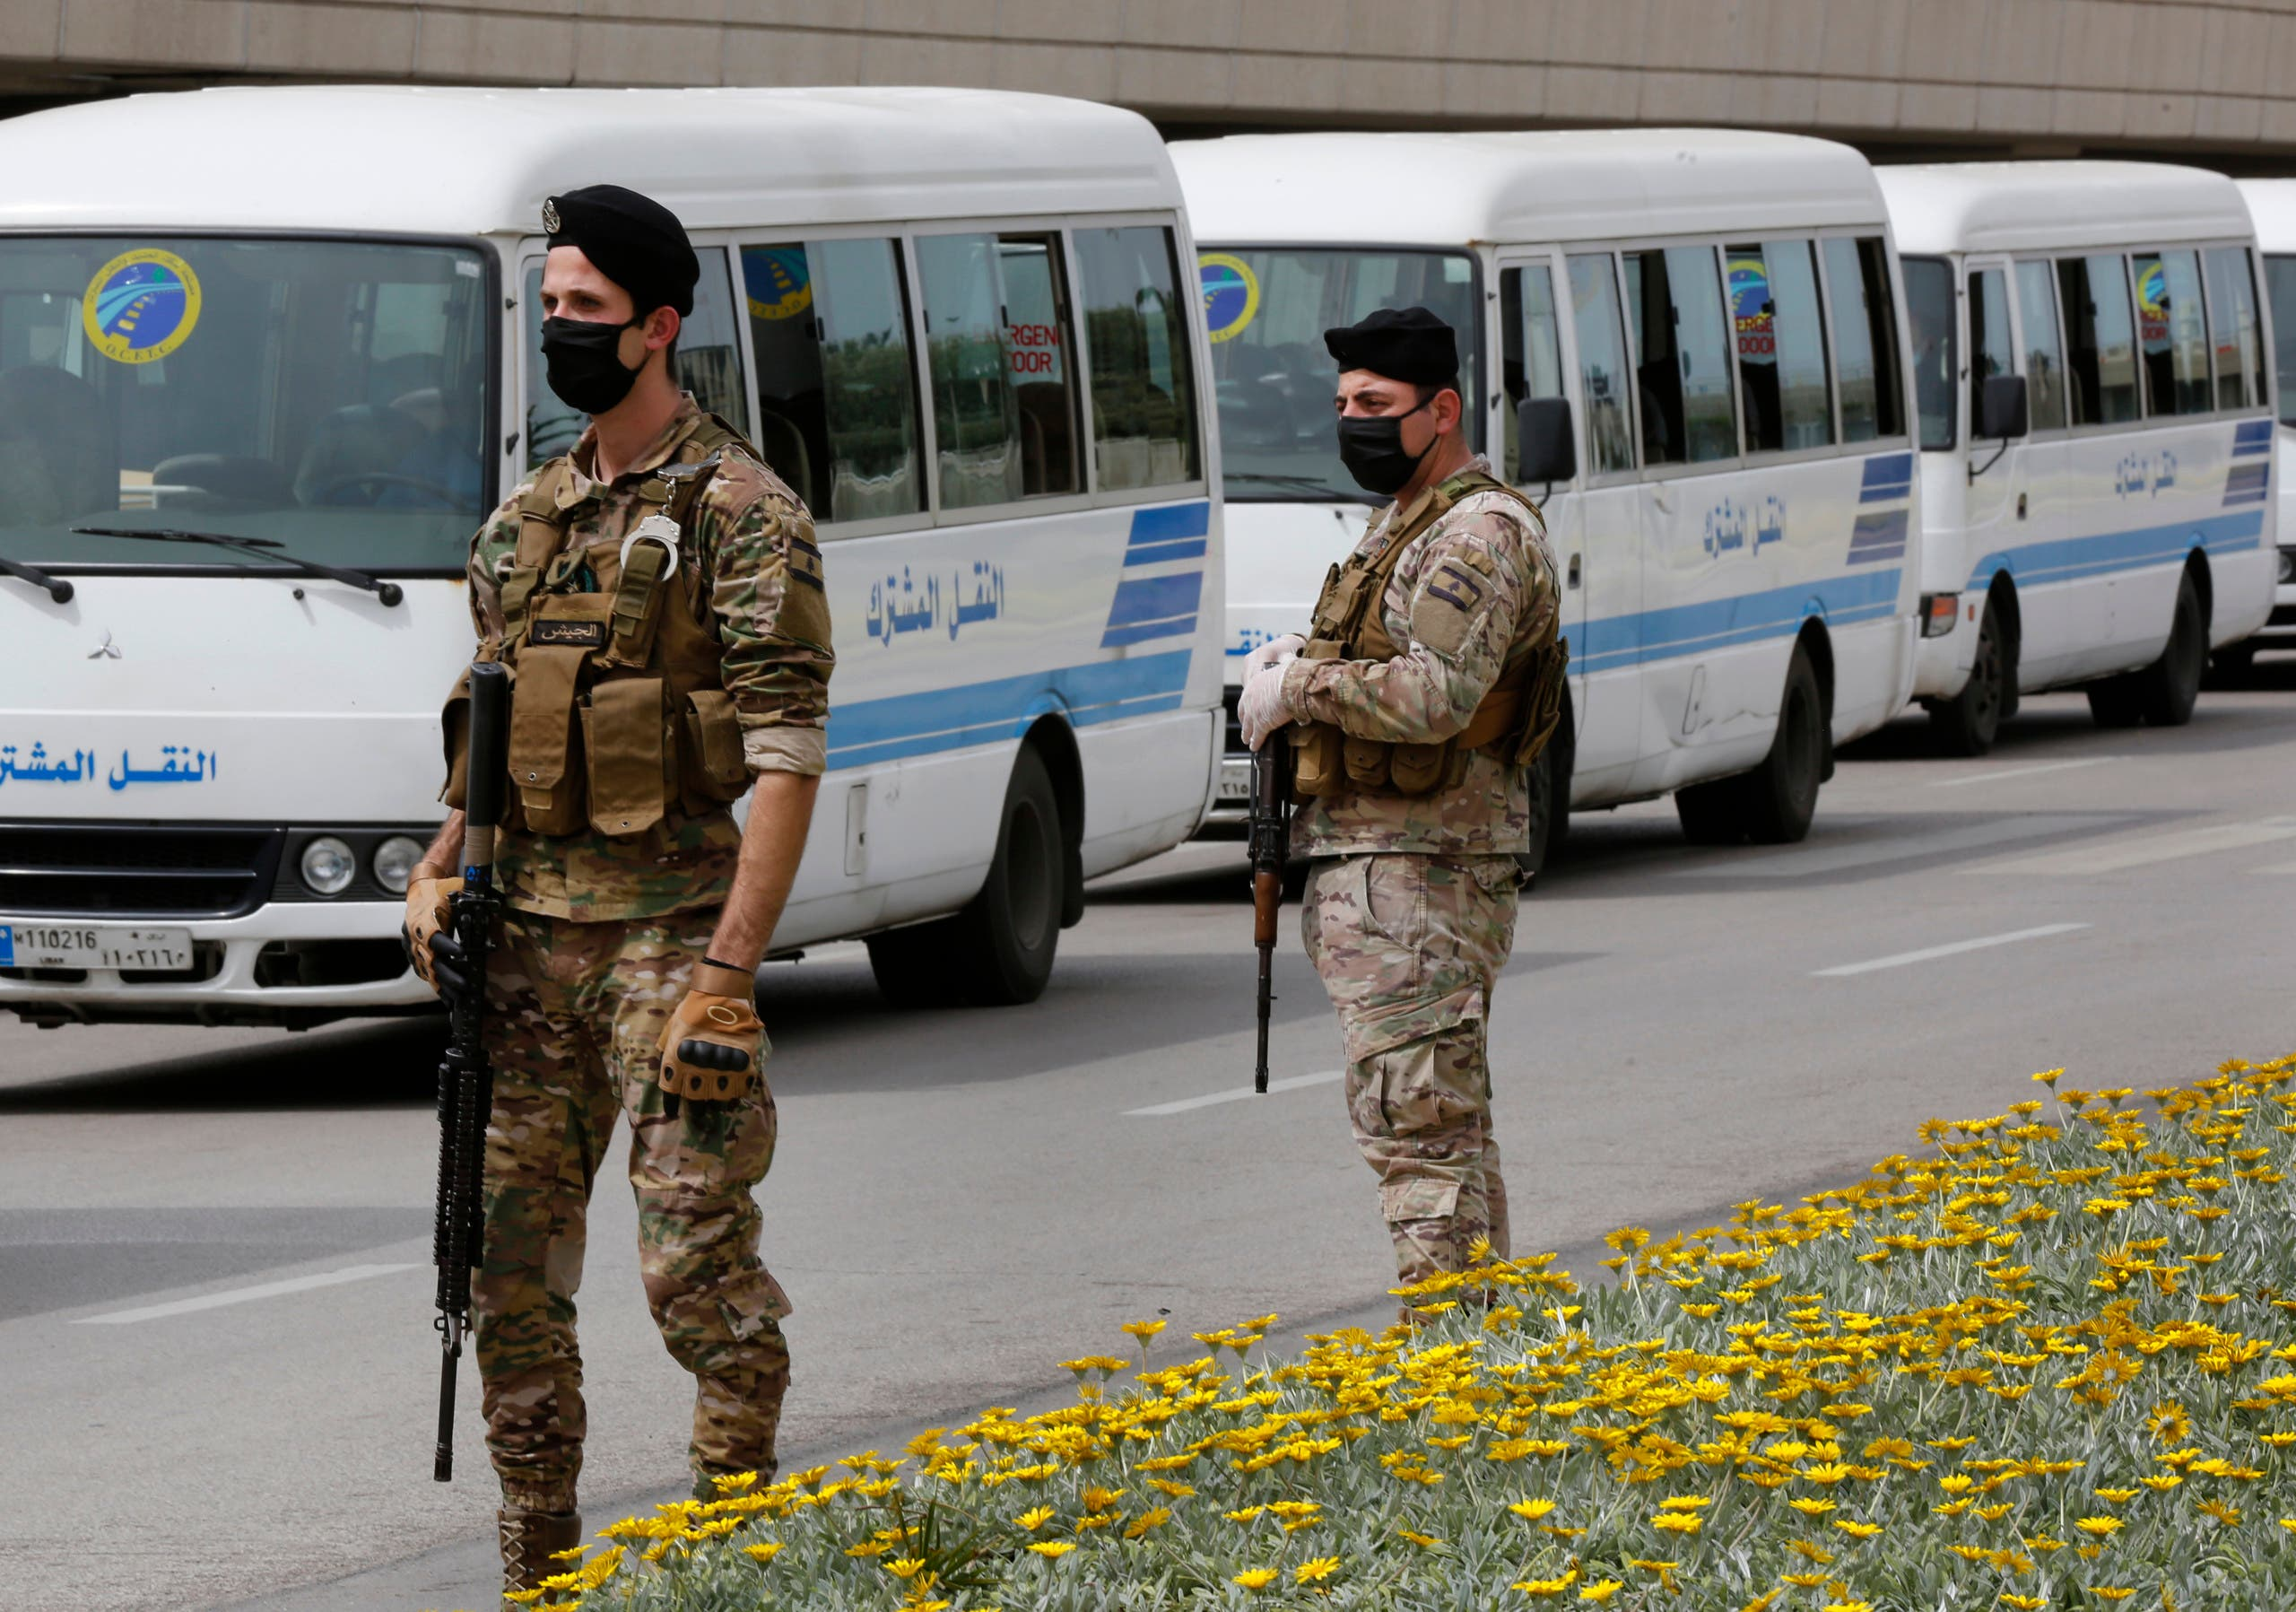 Lebanese army soldiers stand guard next to buses that will carry Lebanese passengers who were stuck in Saudi Arabia, at Rafik Hariri Airport, in Beirut on April 5, 2020. (AP)